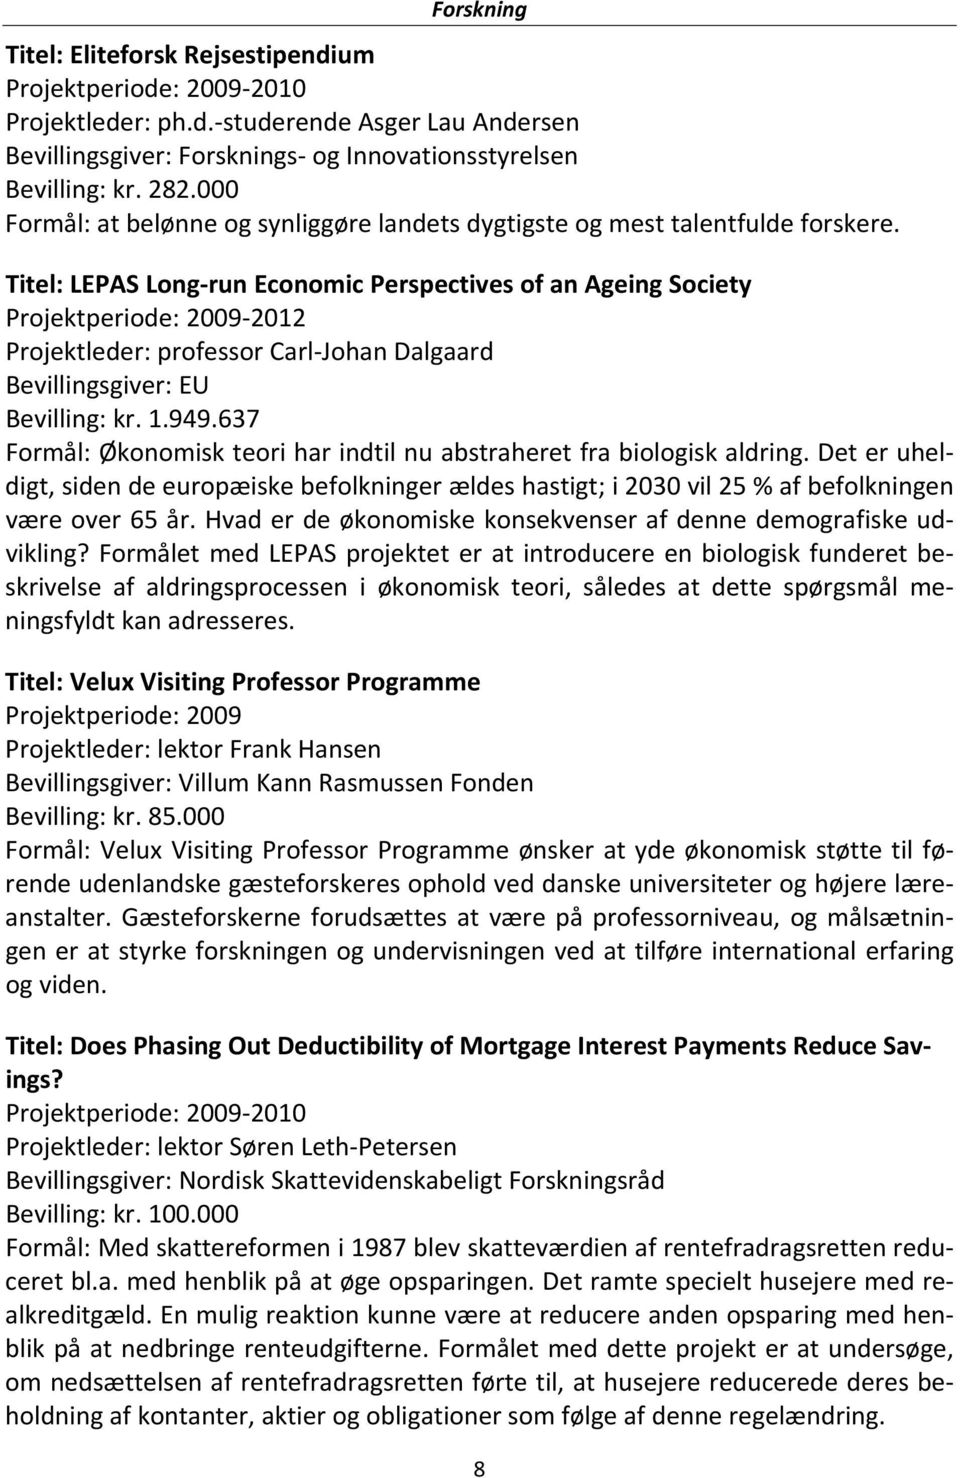 Titel: LEPAS Long run Economic Perspectives of an Ageing Society Projektperiode: 2009 2012 Projektleder: professor Carl Johan Dalgaard Bevillingsgiver: EU Bevilling: kr. 1.949.